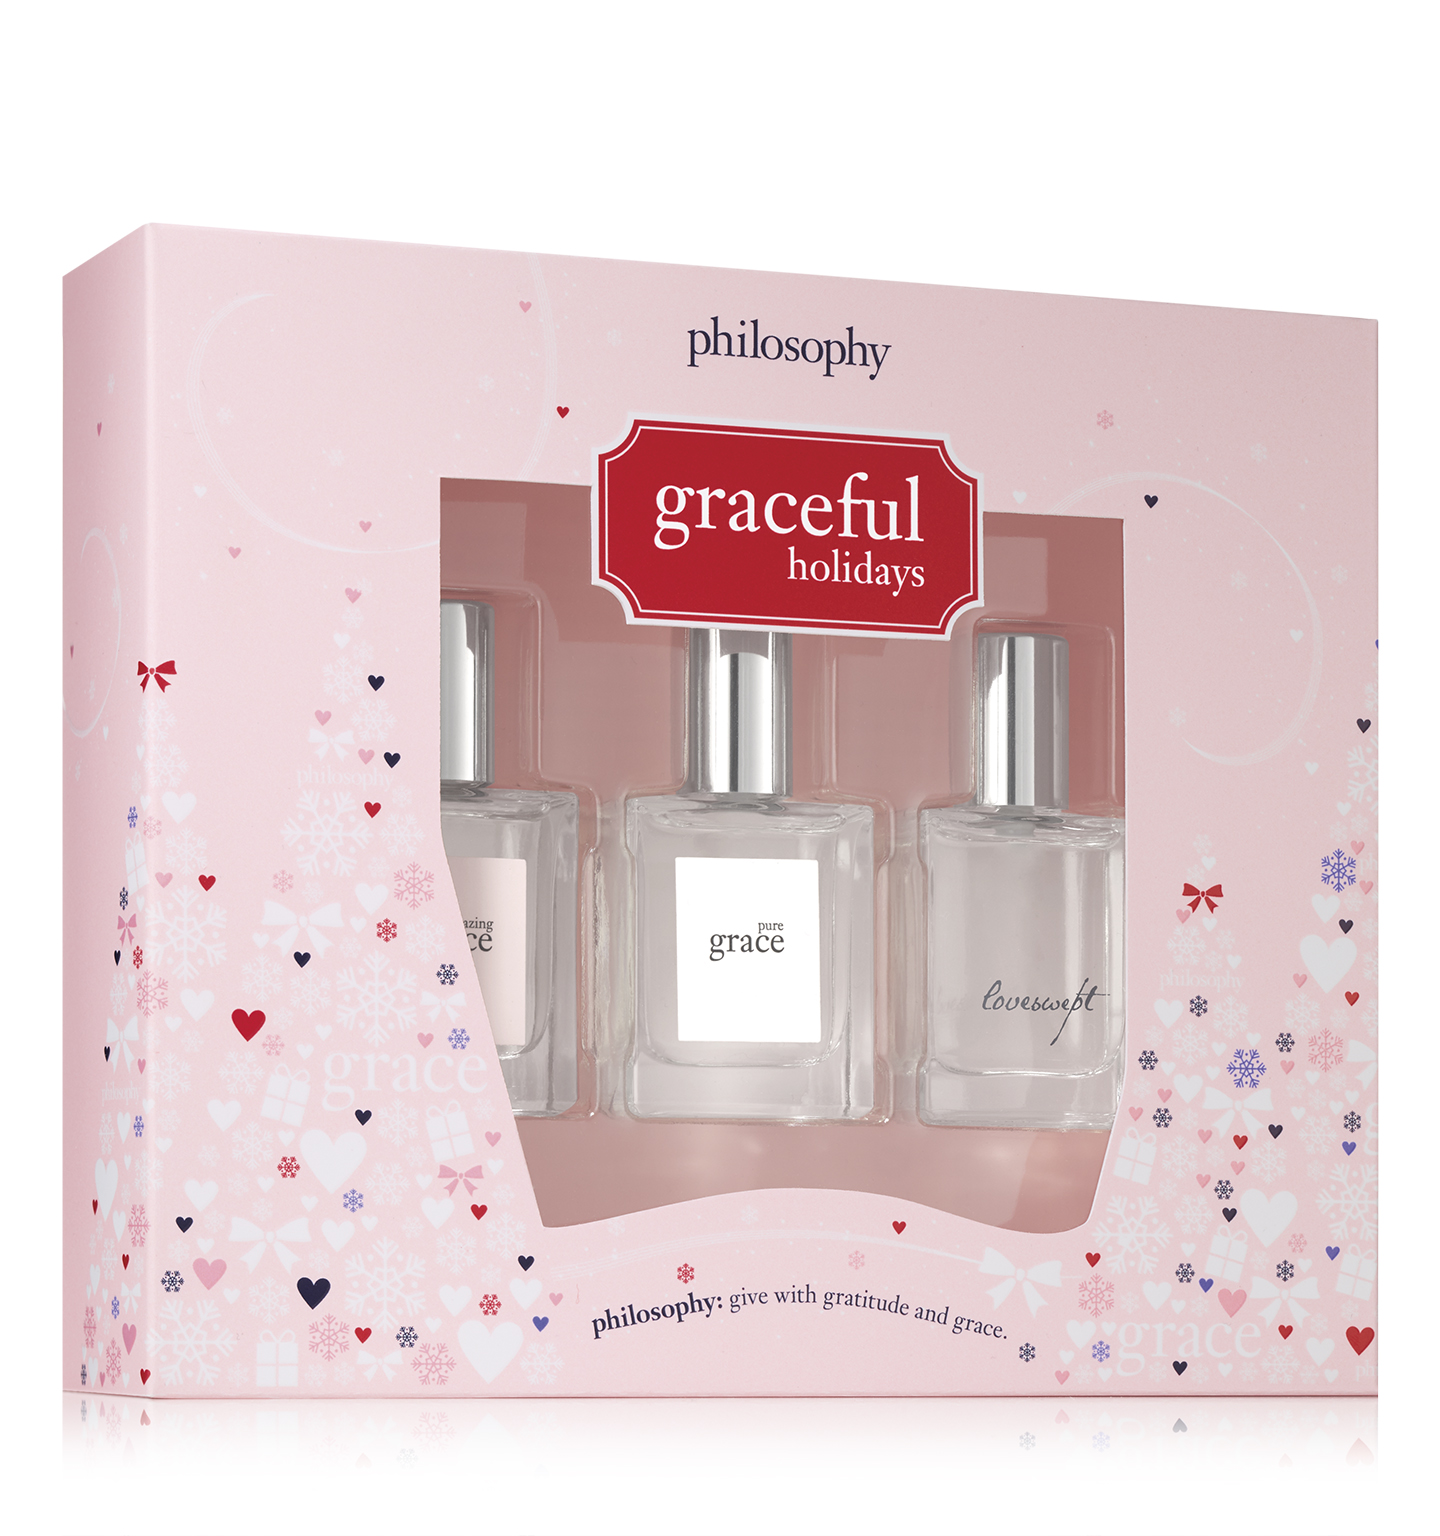 philosophy, holiday fragrance coffret